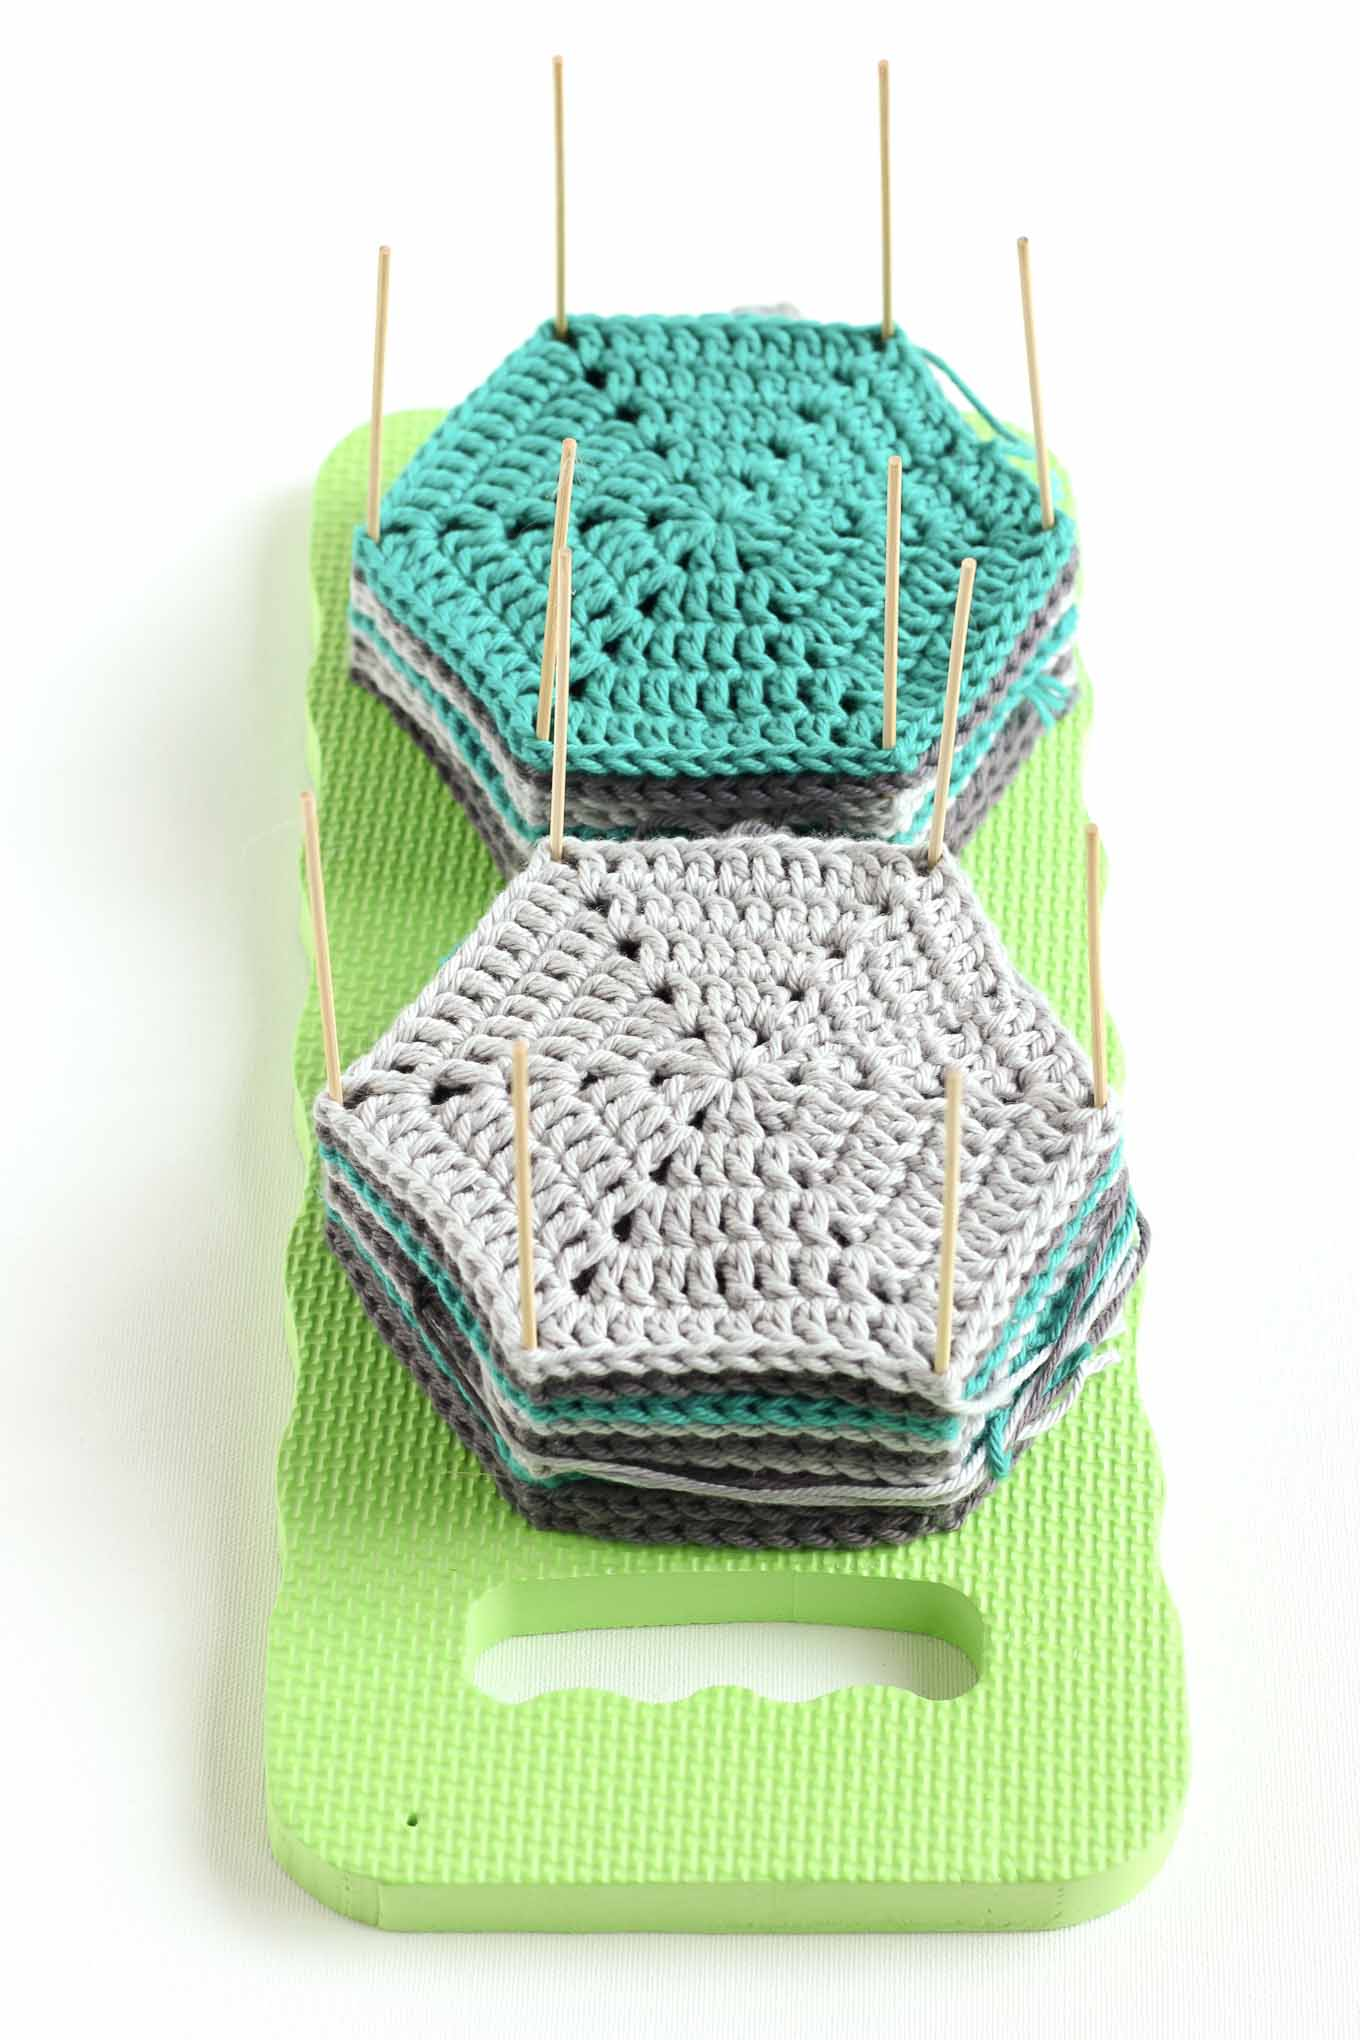 Crochet Blocking : How to block crochet with an easy DIY blocking board